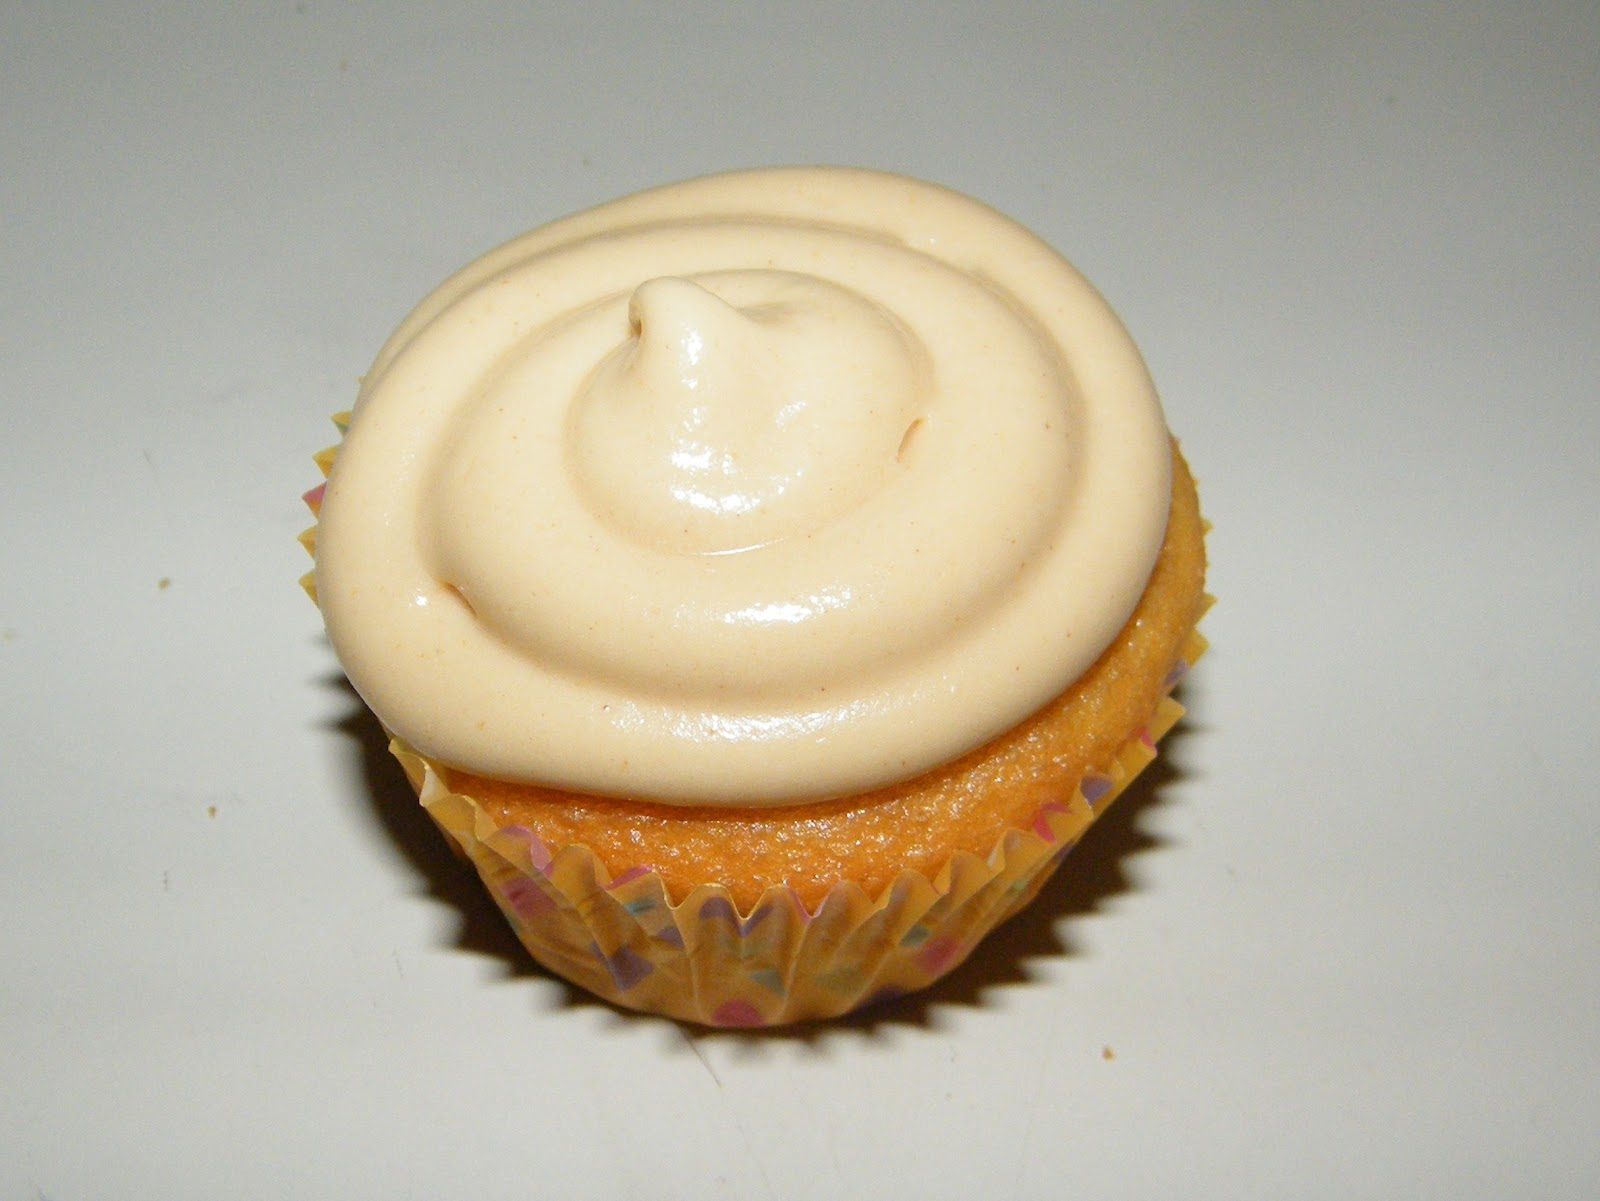 yellow cake with jelly filling and peanut butter frosting